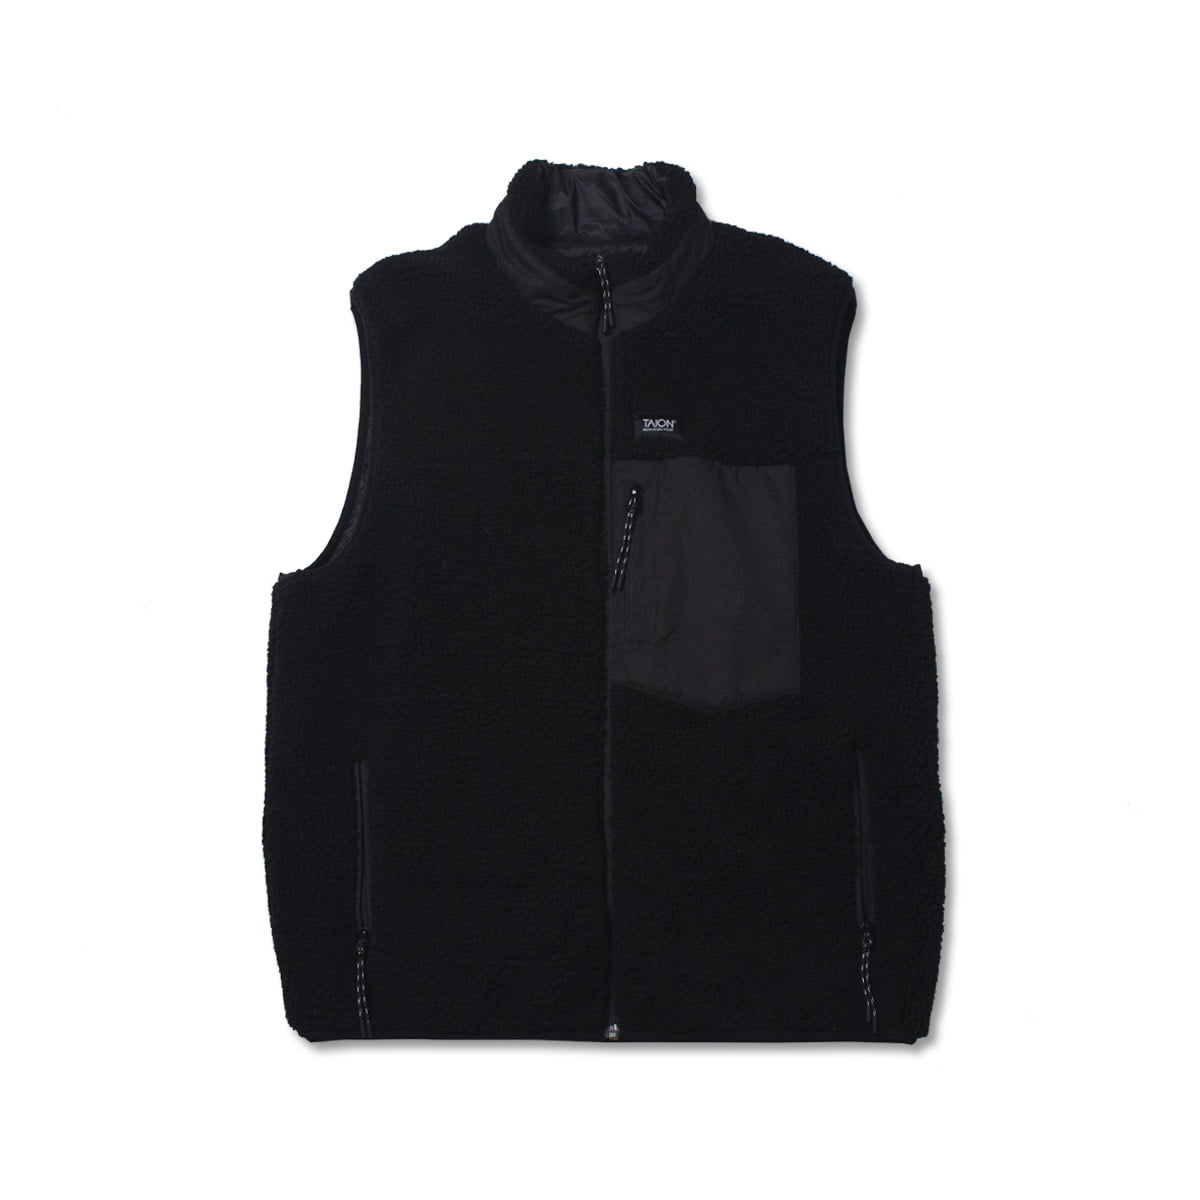 [TAION]  DOWN X BOA REVERSIBLE DOWN VEST (TAION-R002MB) 'BLACK'